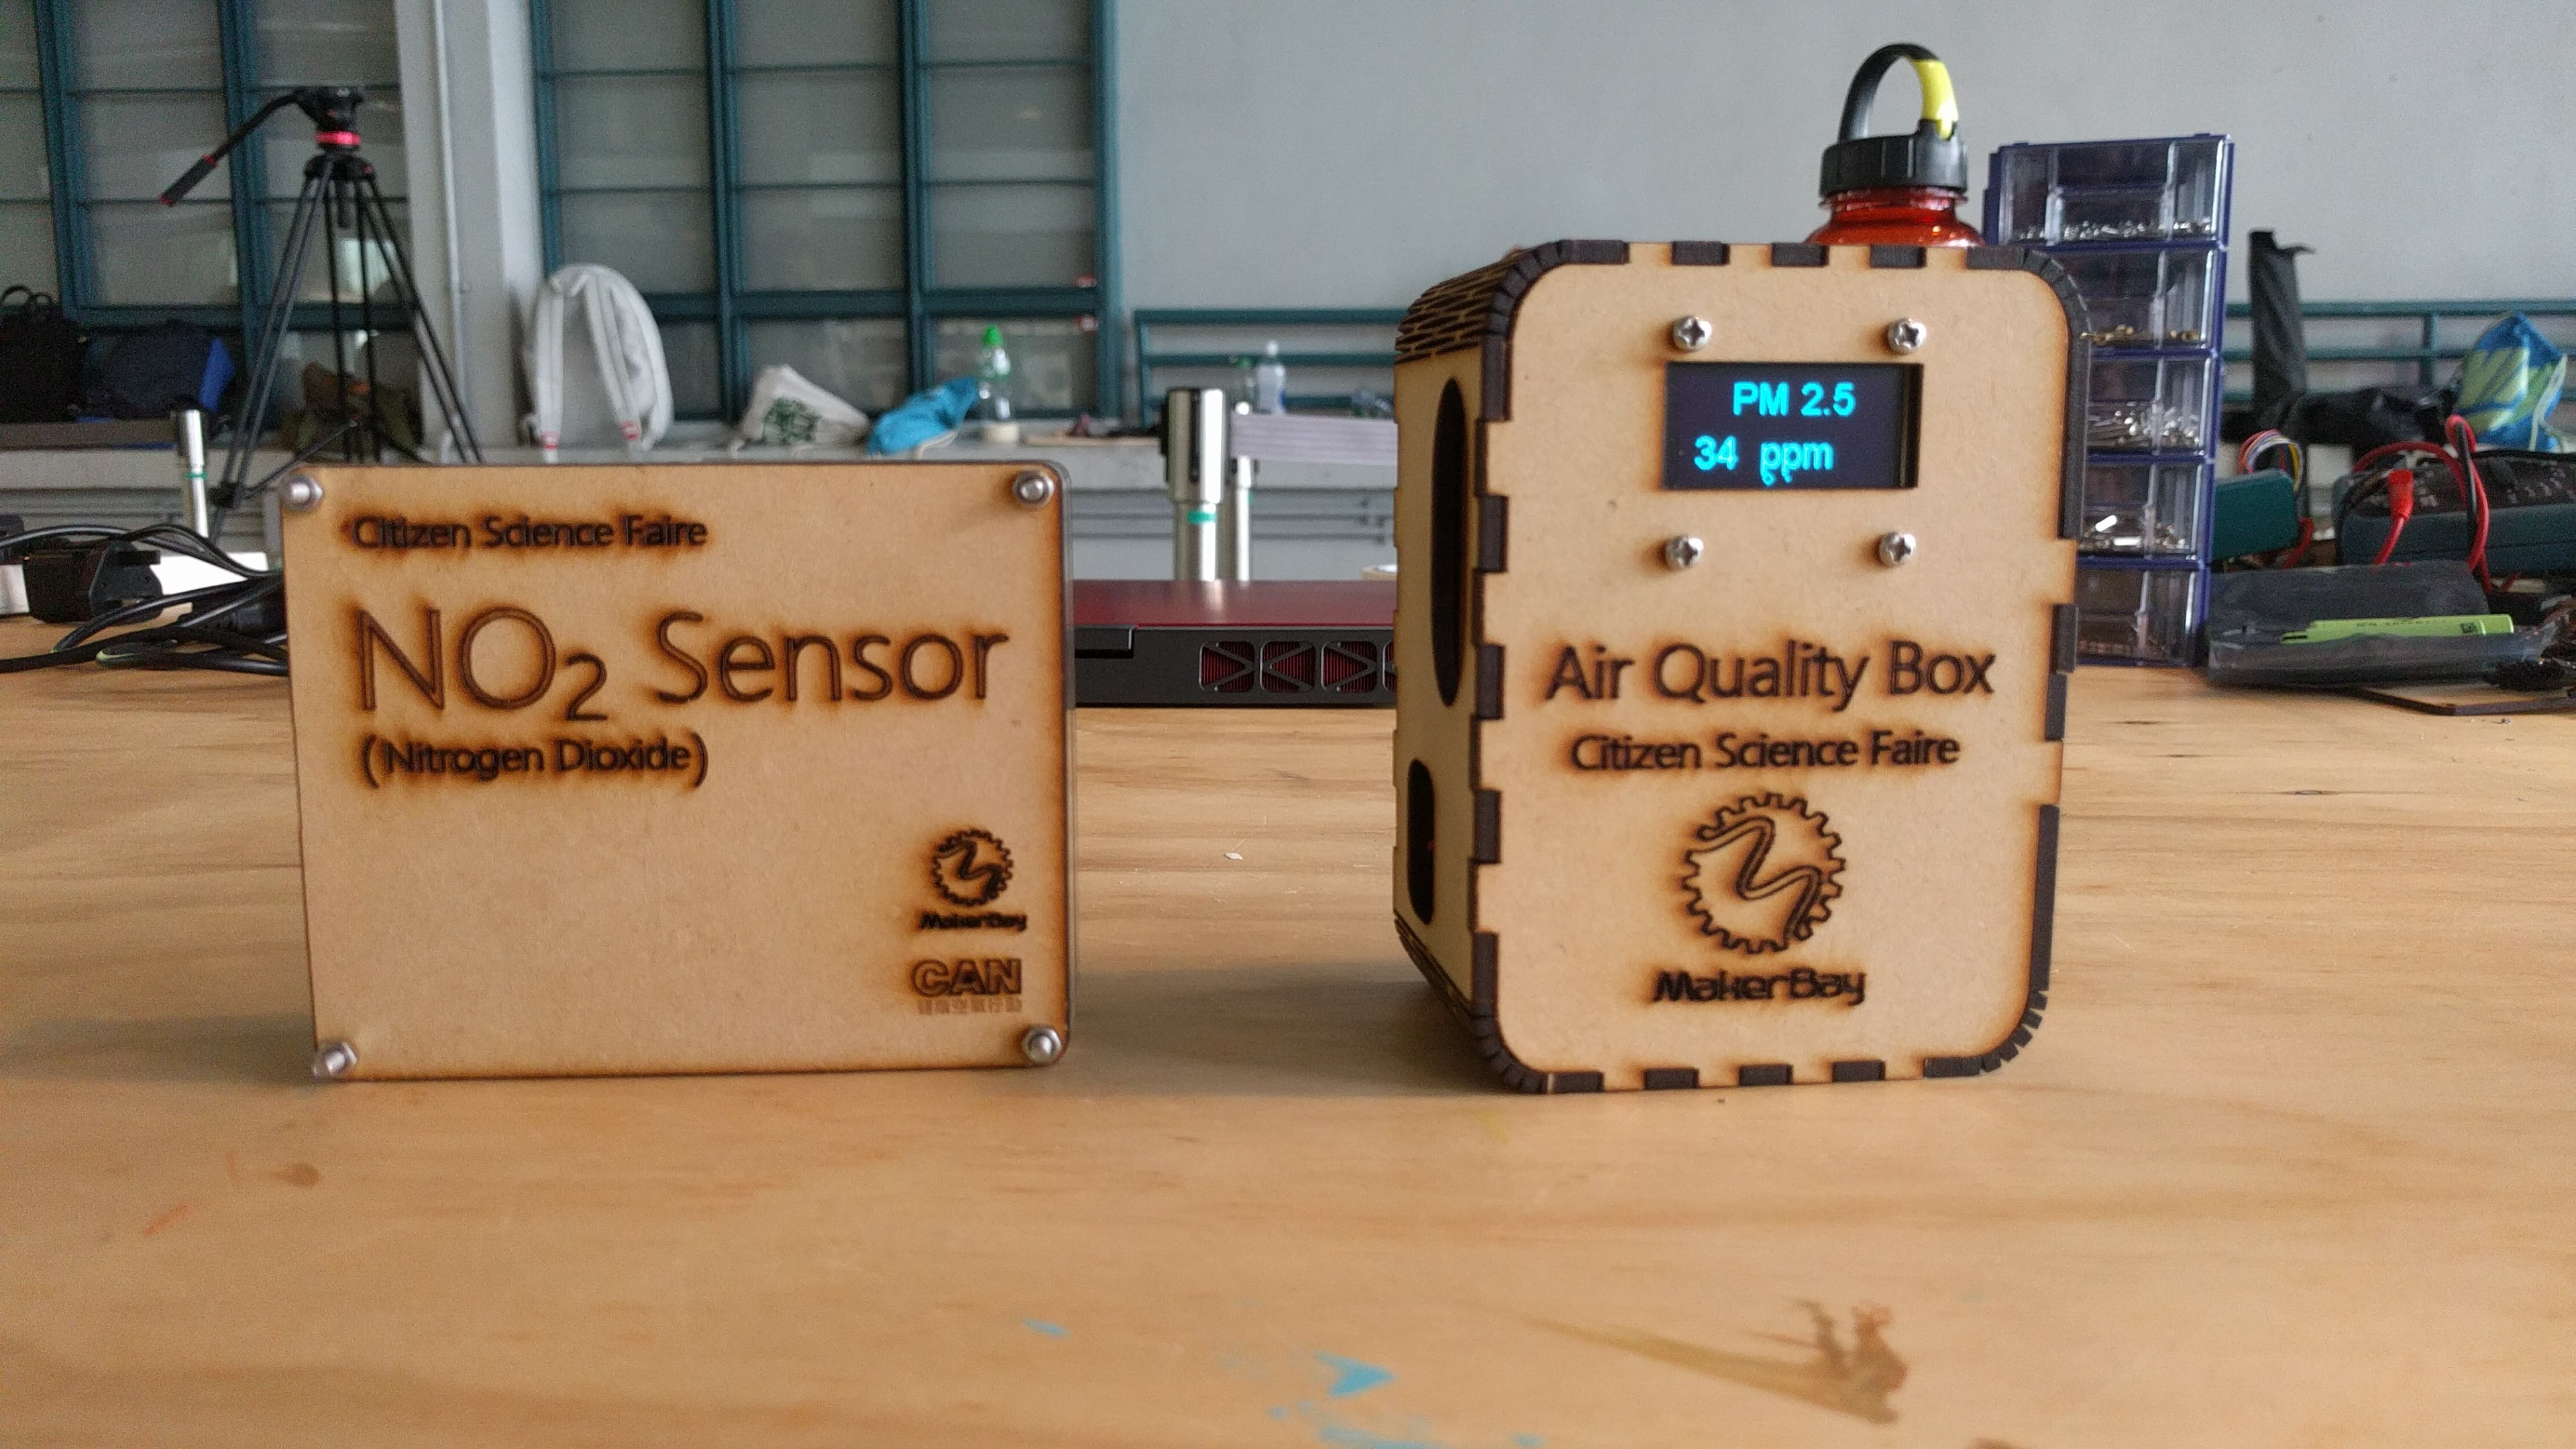 Two air quality monitoring devices